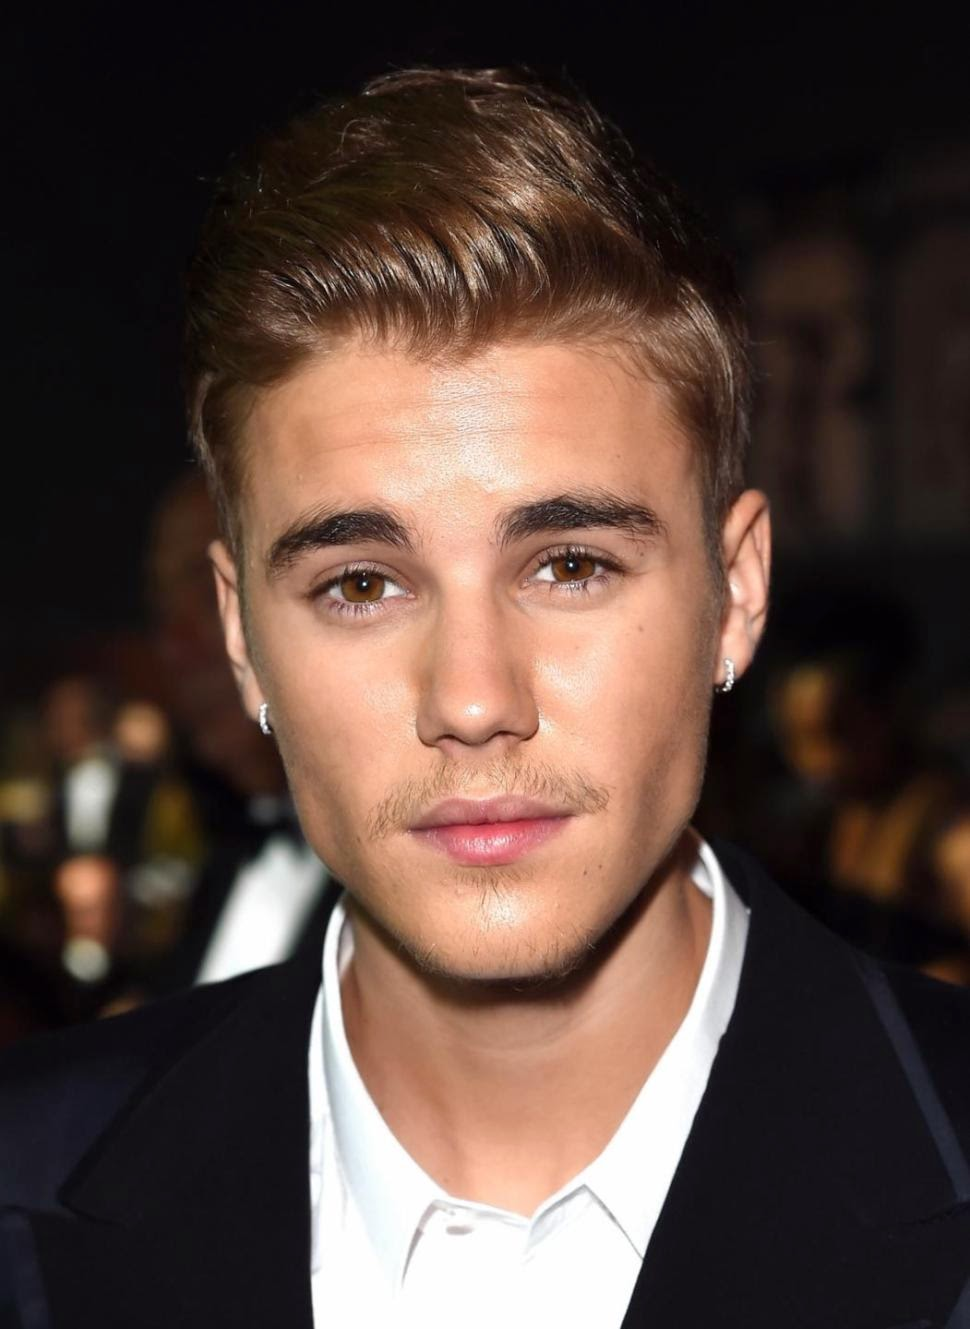 Daniele Venturelli/amfAR14/WireImage Justin Bieber threw at least a dozen raw eggs at his neighbor's home, causing at least $20,000 in damage. Canadian singer Justin Bieber attends the Cinema Against AIDS amfAR gala 2014 held at the Hotel du Cap, Eden Roc in Cap d'Antibes, France, 22 May 2014. Justin Bieber attends an event on May 22, 2014. Bieber's current manager, Scooter Braun first discovered him through his YouTube videos in 2007. Born: March 1, 1994 (age 20), London, Canada. Baby 2010 My World 2.0. Boyfriend 2012 Believe. As Long As You Love Me 2012 Believe. Beauty and a Beat 2012 Believe. Profile Justin Bieber from Twitter, Instagram, YouTube, Facebook, Myspace